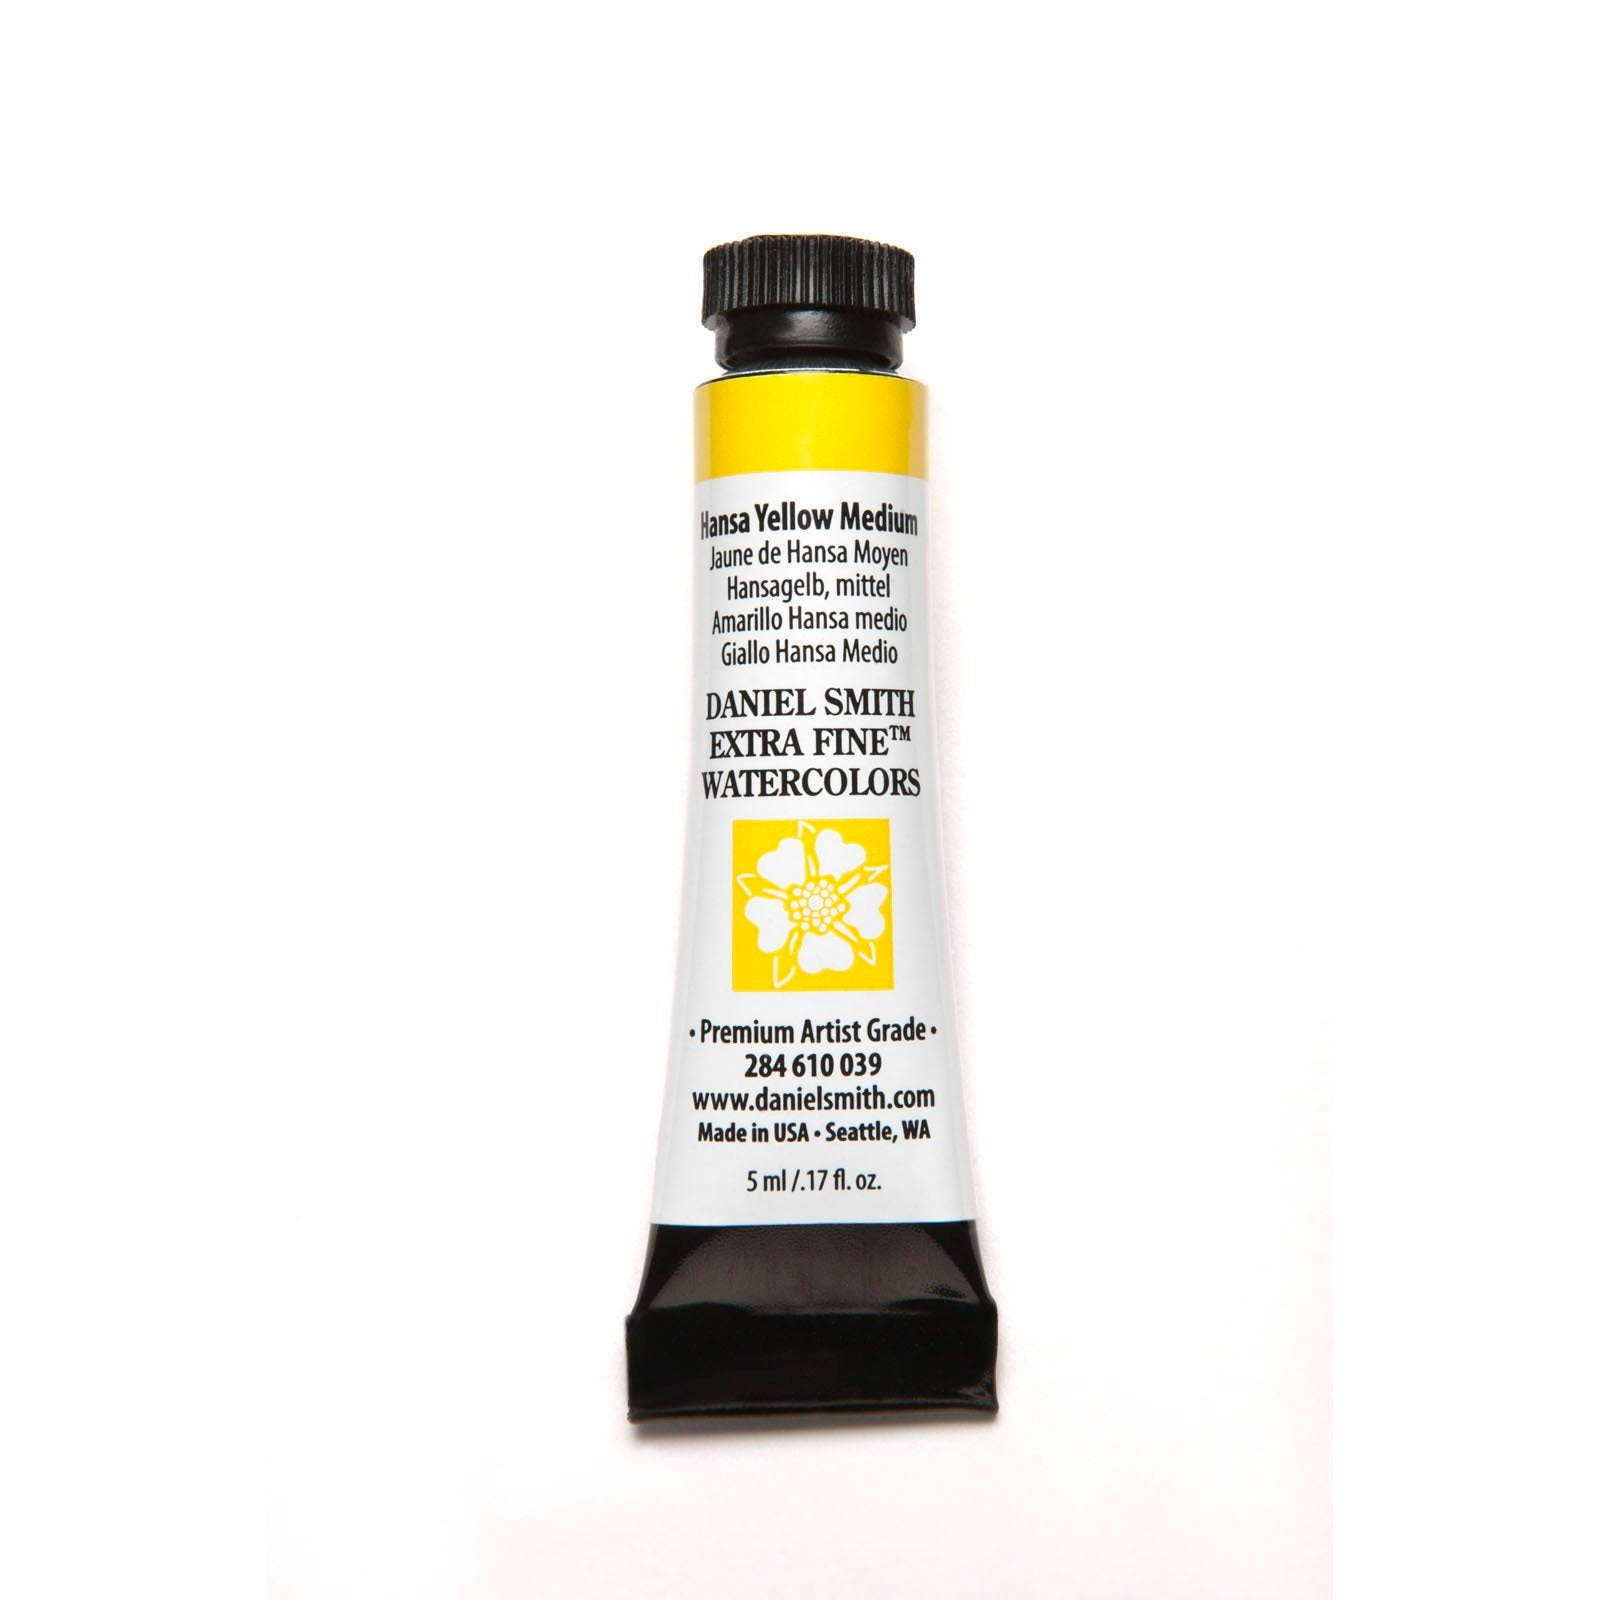 Daniel Smith Extra Fine Watercolor, 5 ml